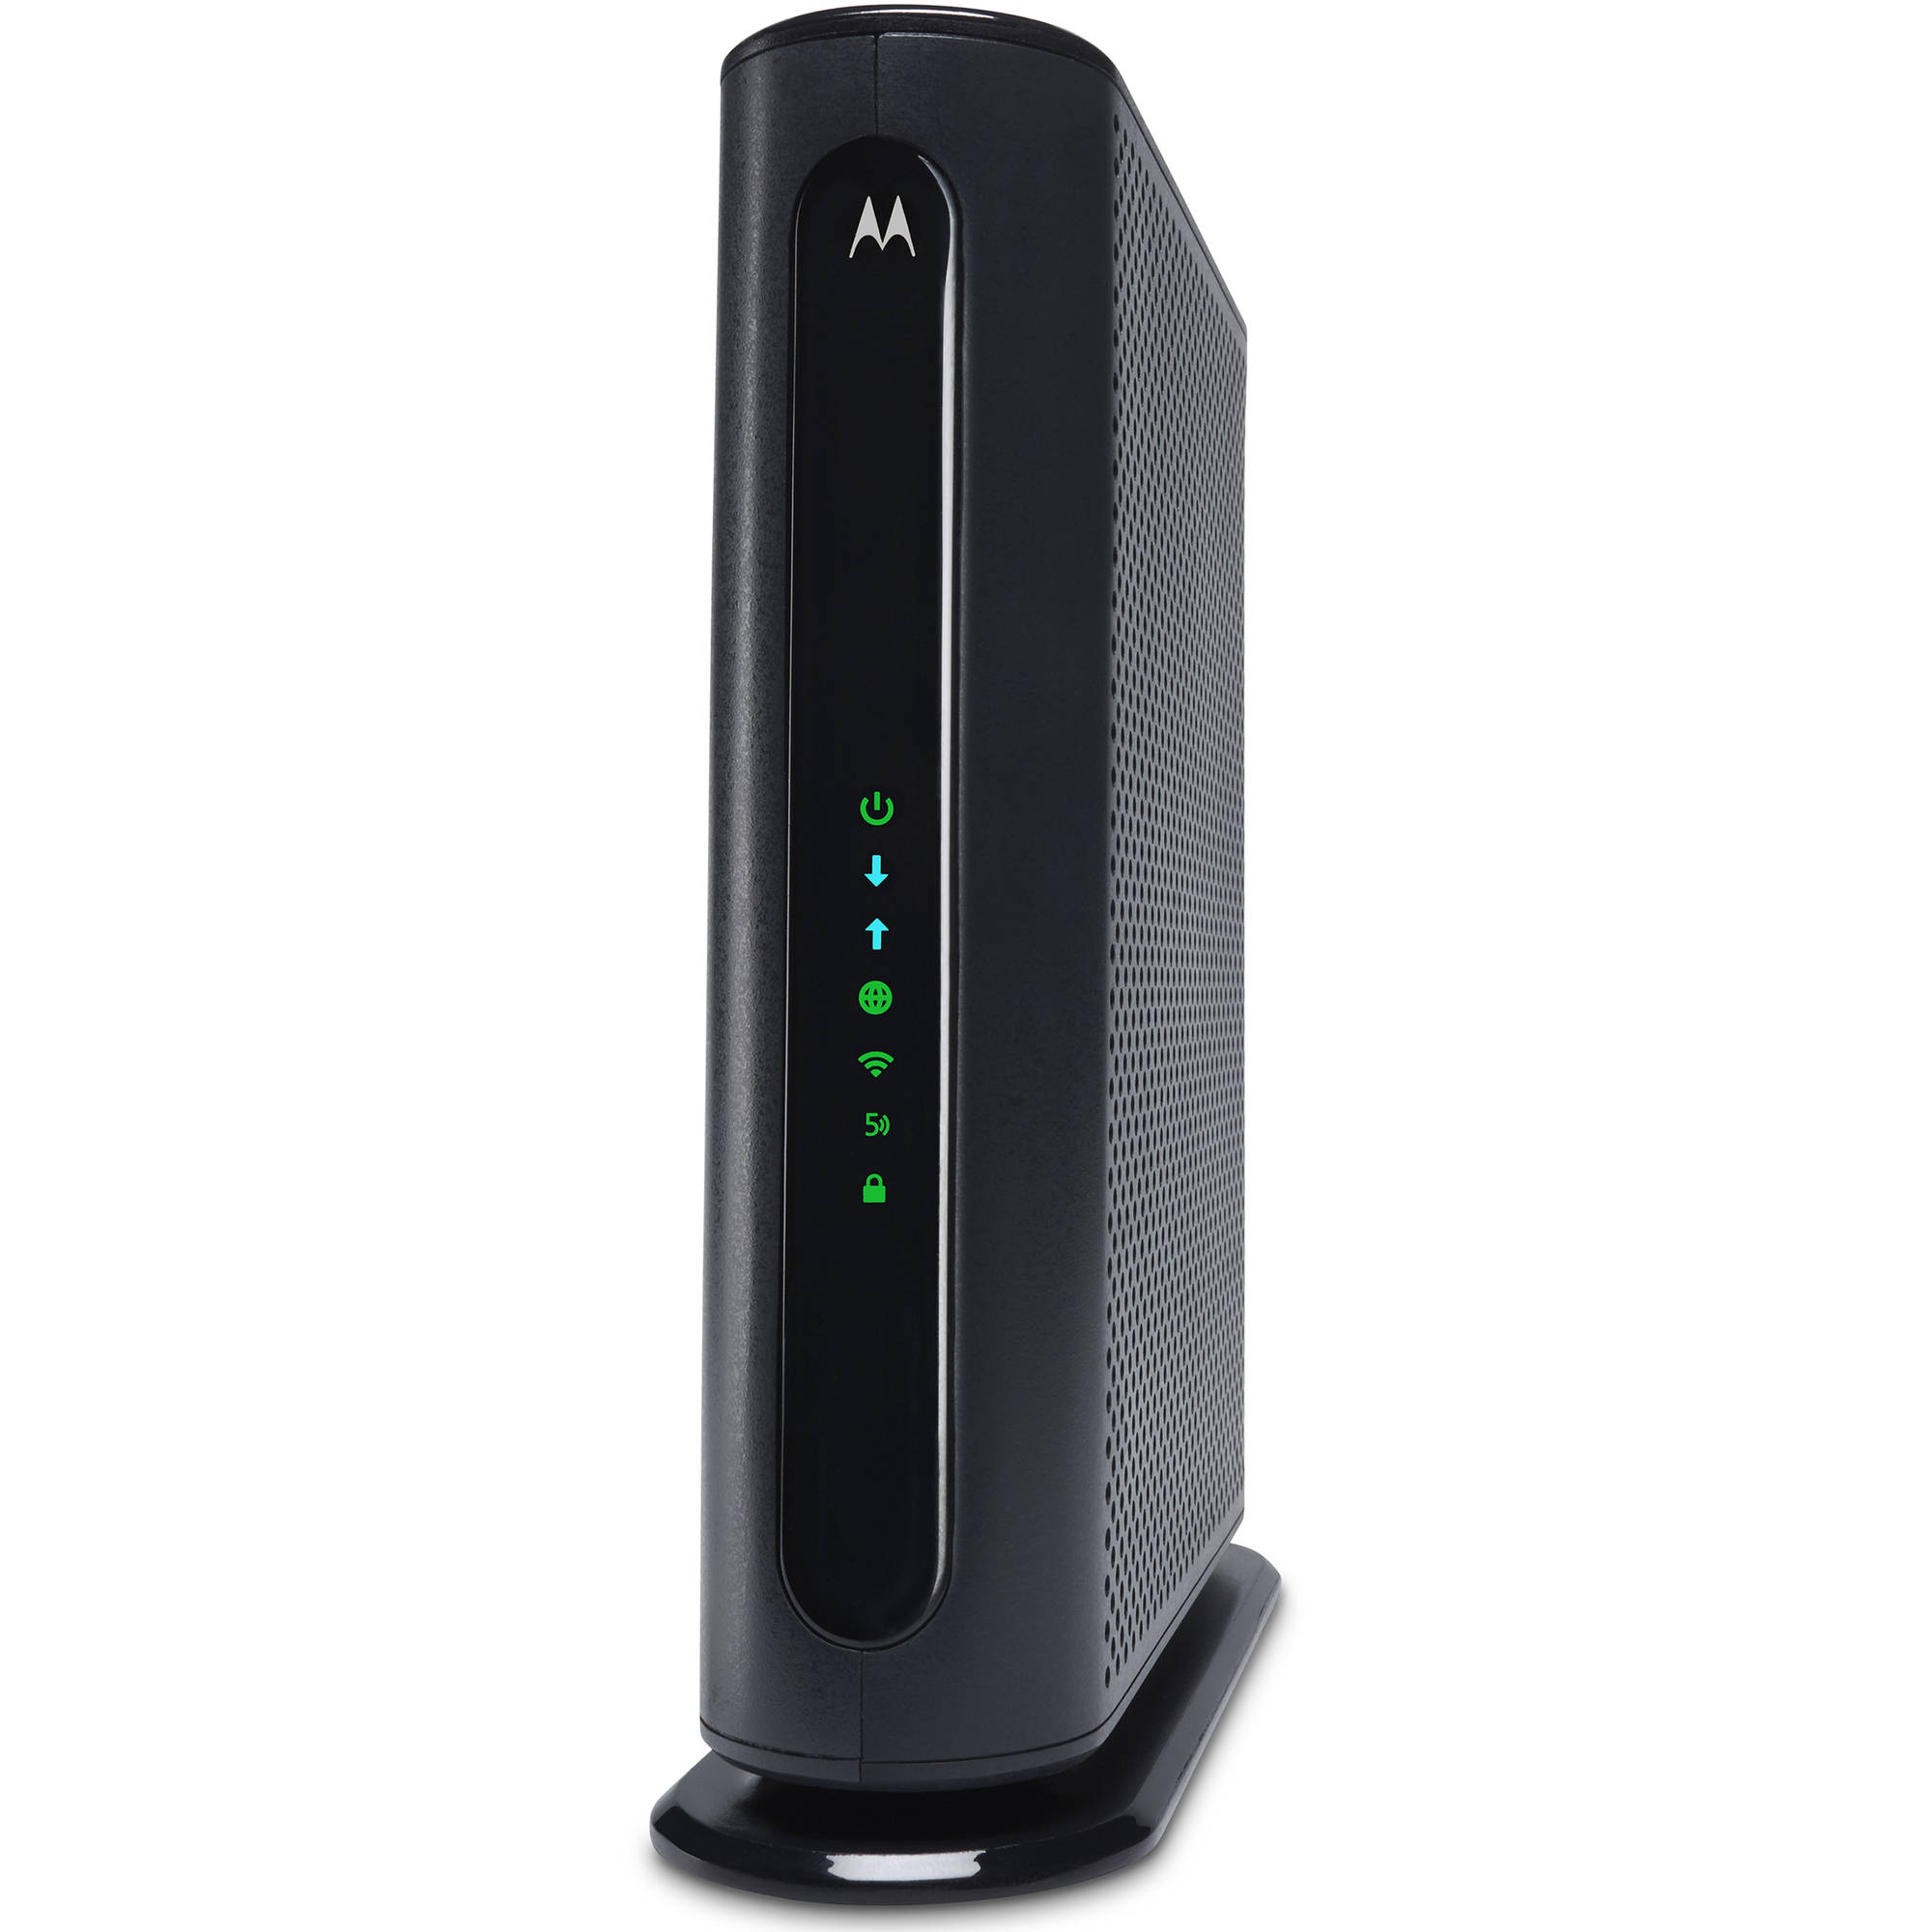 Motorola 16x4 Cable Modem + AC1900 WiFi Gigabit Router with Power Boost, MG7550 by Motorola